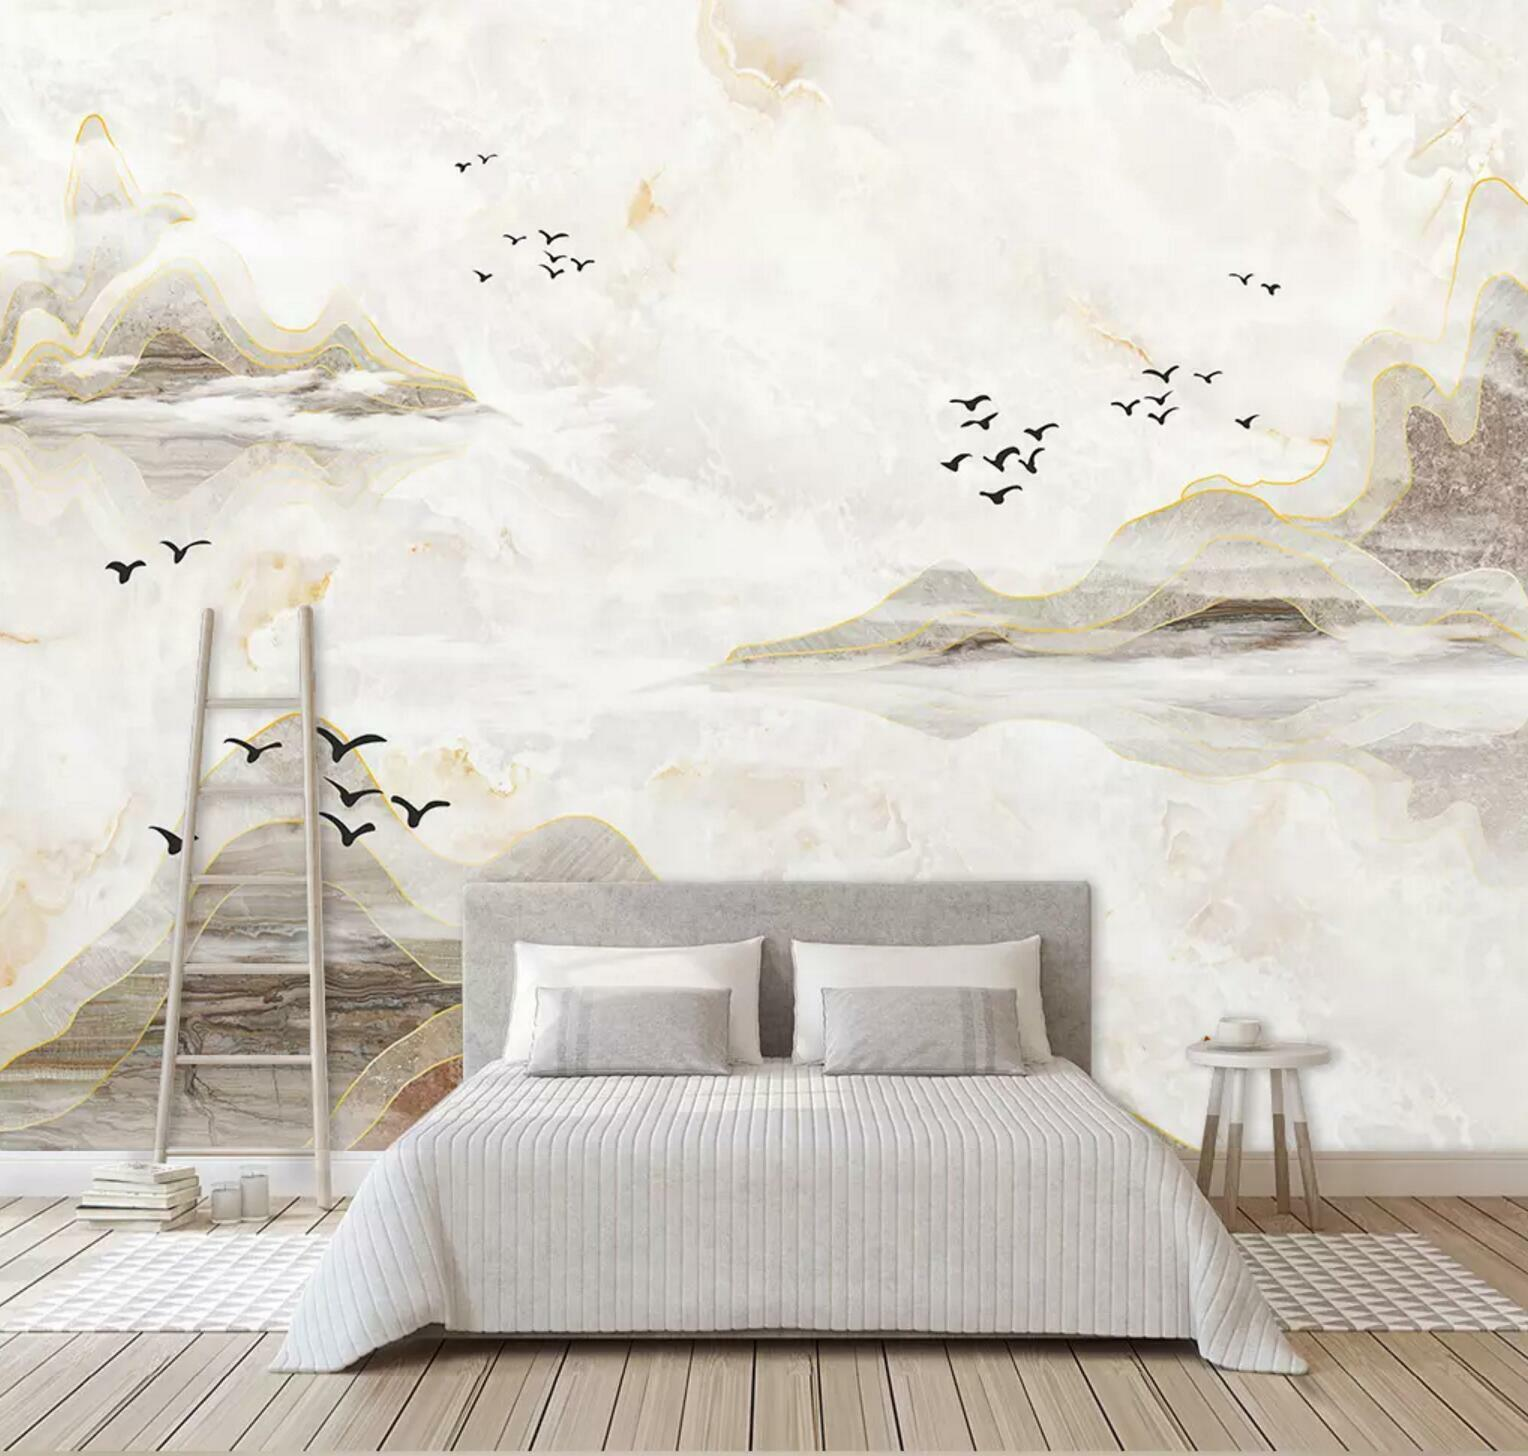 3D Mountain Birds 67 Wall Paper Exclusive MXY Wallpaper Mural Decal Indoor wall